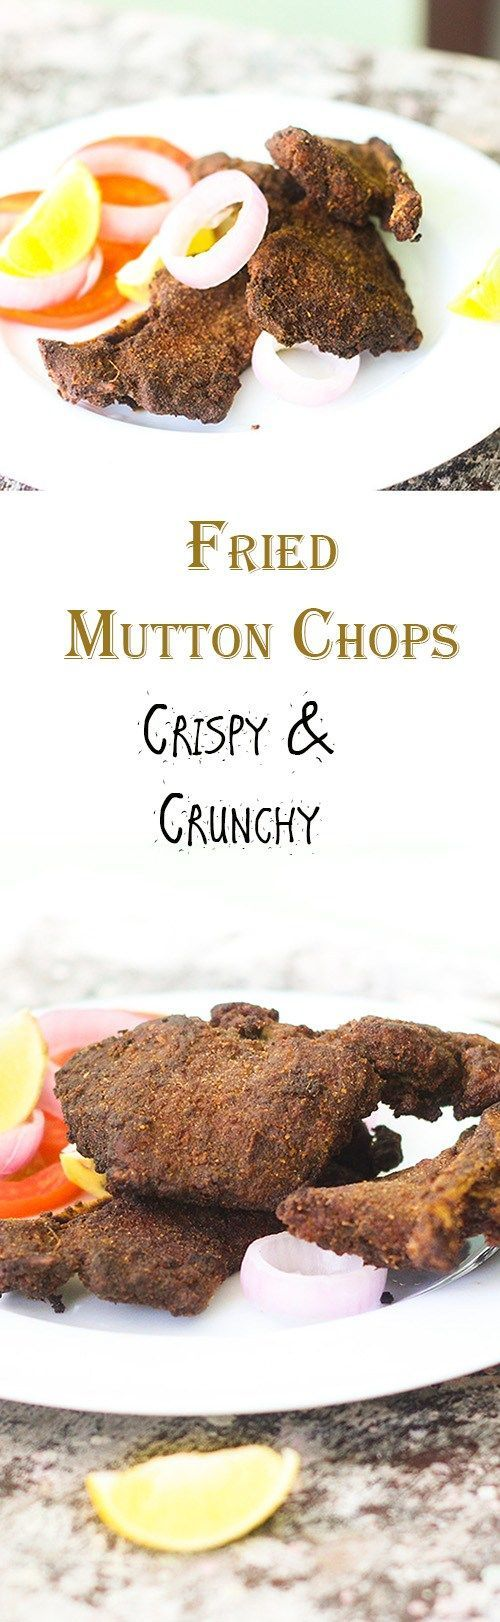 Fried Mutton Chops or the spicy mutton chops fry recipe is a great starter recipe. You can even serve this as a side dish to any meal.